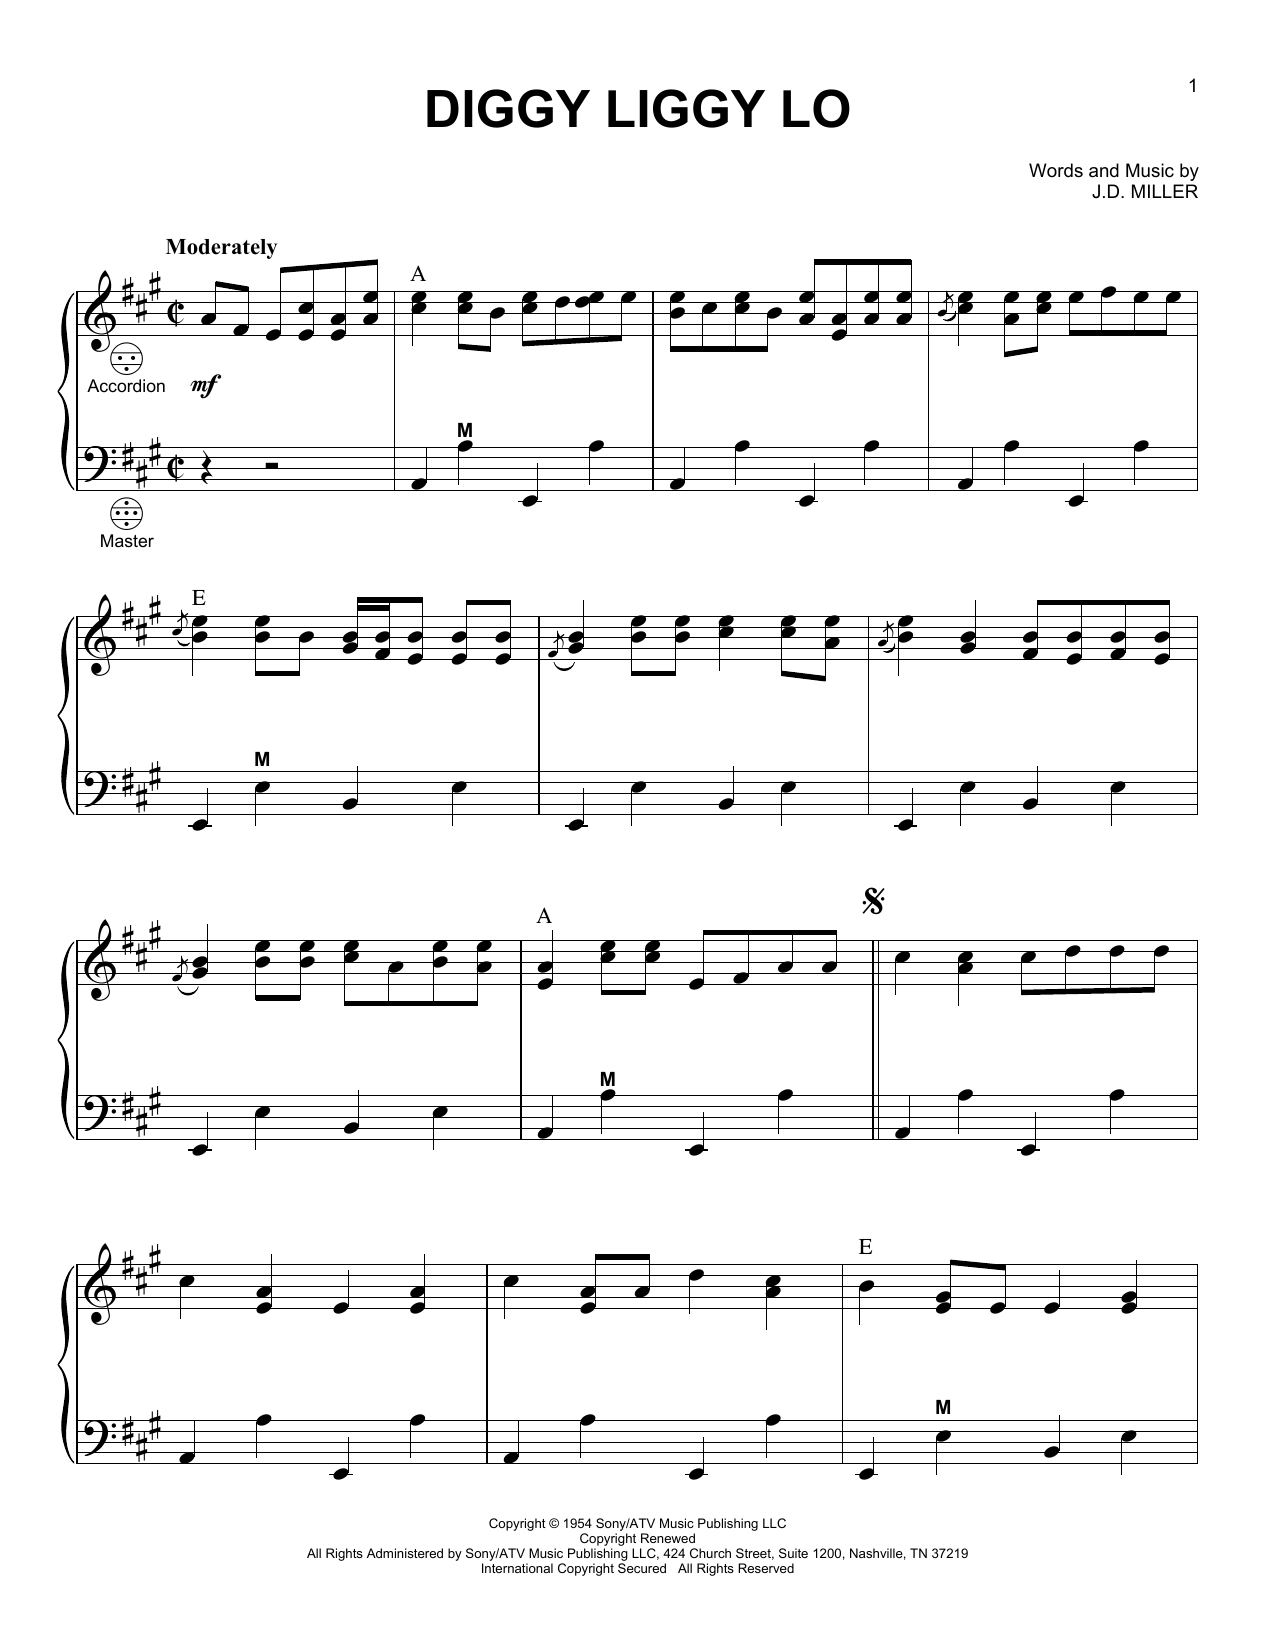 J.D. Miller Diggy Liggy Lo sheet music notes and chords. Download Printable PDF.